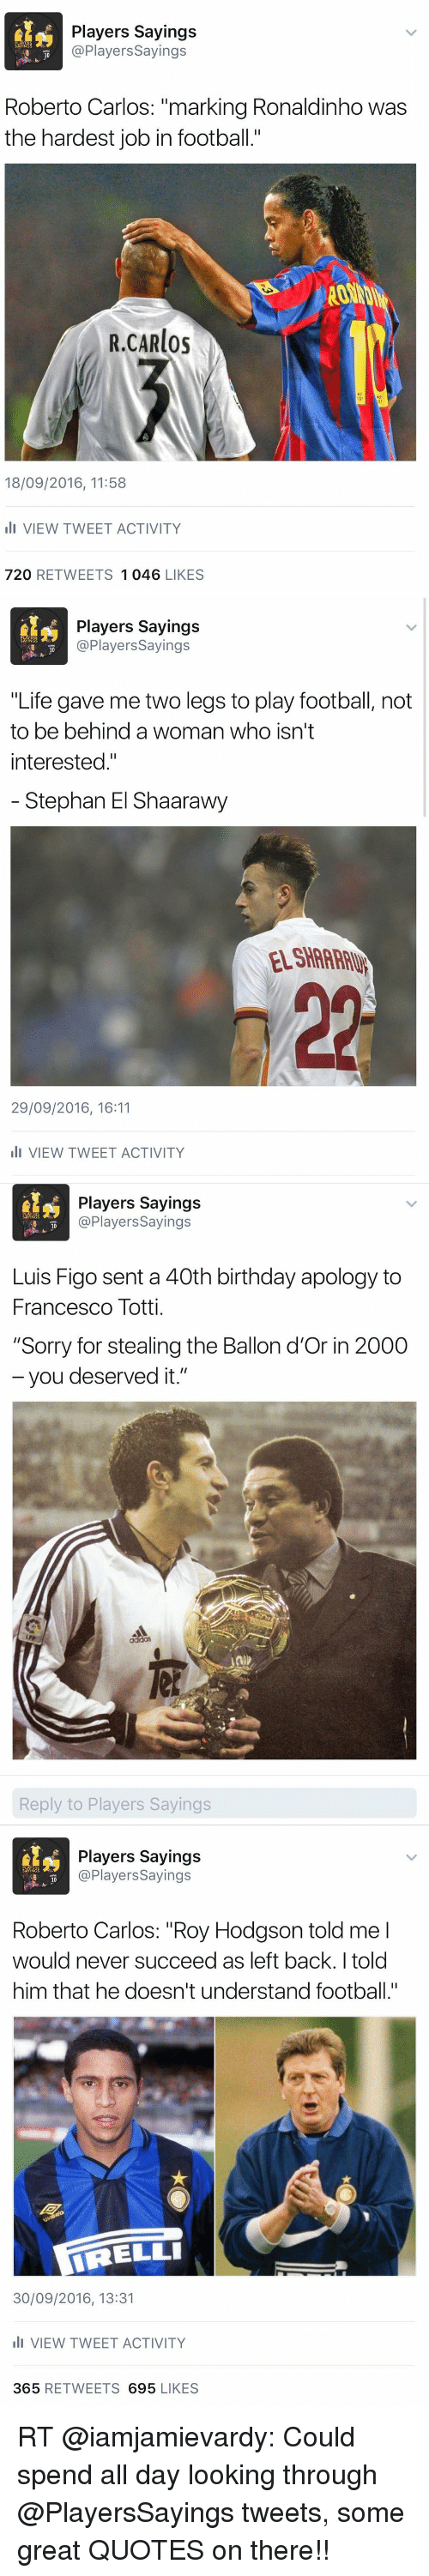 """roy hodgson: Players sayings  @Players sayings  SAYING  10  Roberto Carlos: marking Ronaldinho was  the hardest job in football.""""  R.CARlos  18/09/2016, 11:58  III VIEW TWEET ACTIVITY  720  RETWEETS  1 046  LIKES   Players Sayings  @Players Sayings  SAYIN  10  """"Life gave me two legs to play football, not  to be behind a woman  who isn't  interested  Stephan El Shaarawy  29/09/2016, 16:11  III VIEW TWEET ACTIVITY   Players Sayings  Players Sayings  10  Luis Figo sent a 40th birthday apology to  Francesco Totti.  """"Sorry for stealing the Ballon d'Or in 2000  you deserved it.""""  Reply to Players Savings   Players Sayings  @Players sayings  YING  Roberto Carlos: """"Roy Hodgson told me I  would never succeed as left back. I told  him that he doesn't understand football.""""  IRELLI  30/09/2016, 13:31  III VIEW TWEET ACTIVITY  365  RETWEETS  695  LIKES RT @iamjamievardy: Could spend all day looking through @PlayersSayings tweets, some great QUOTES on there!!"""